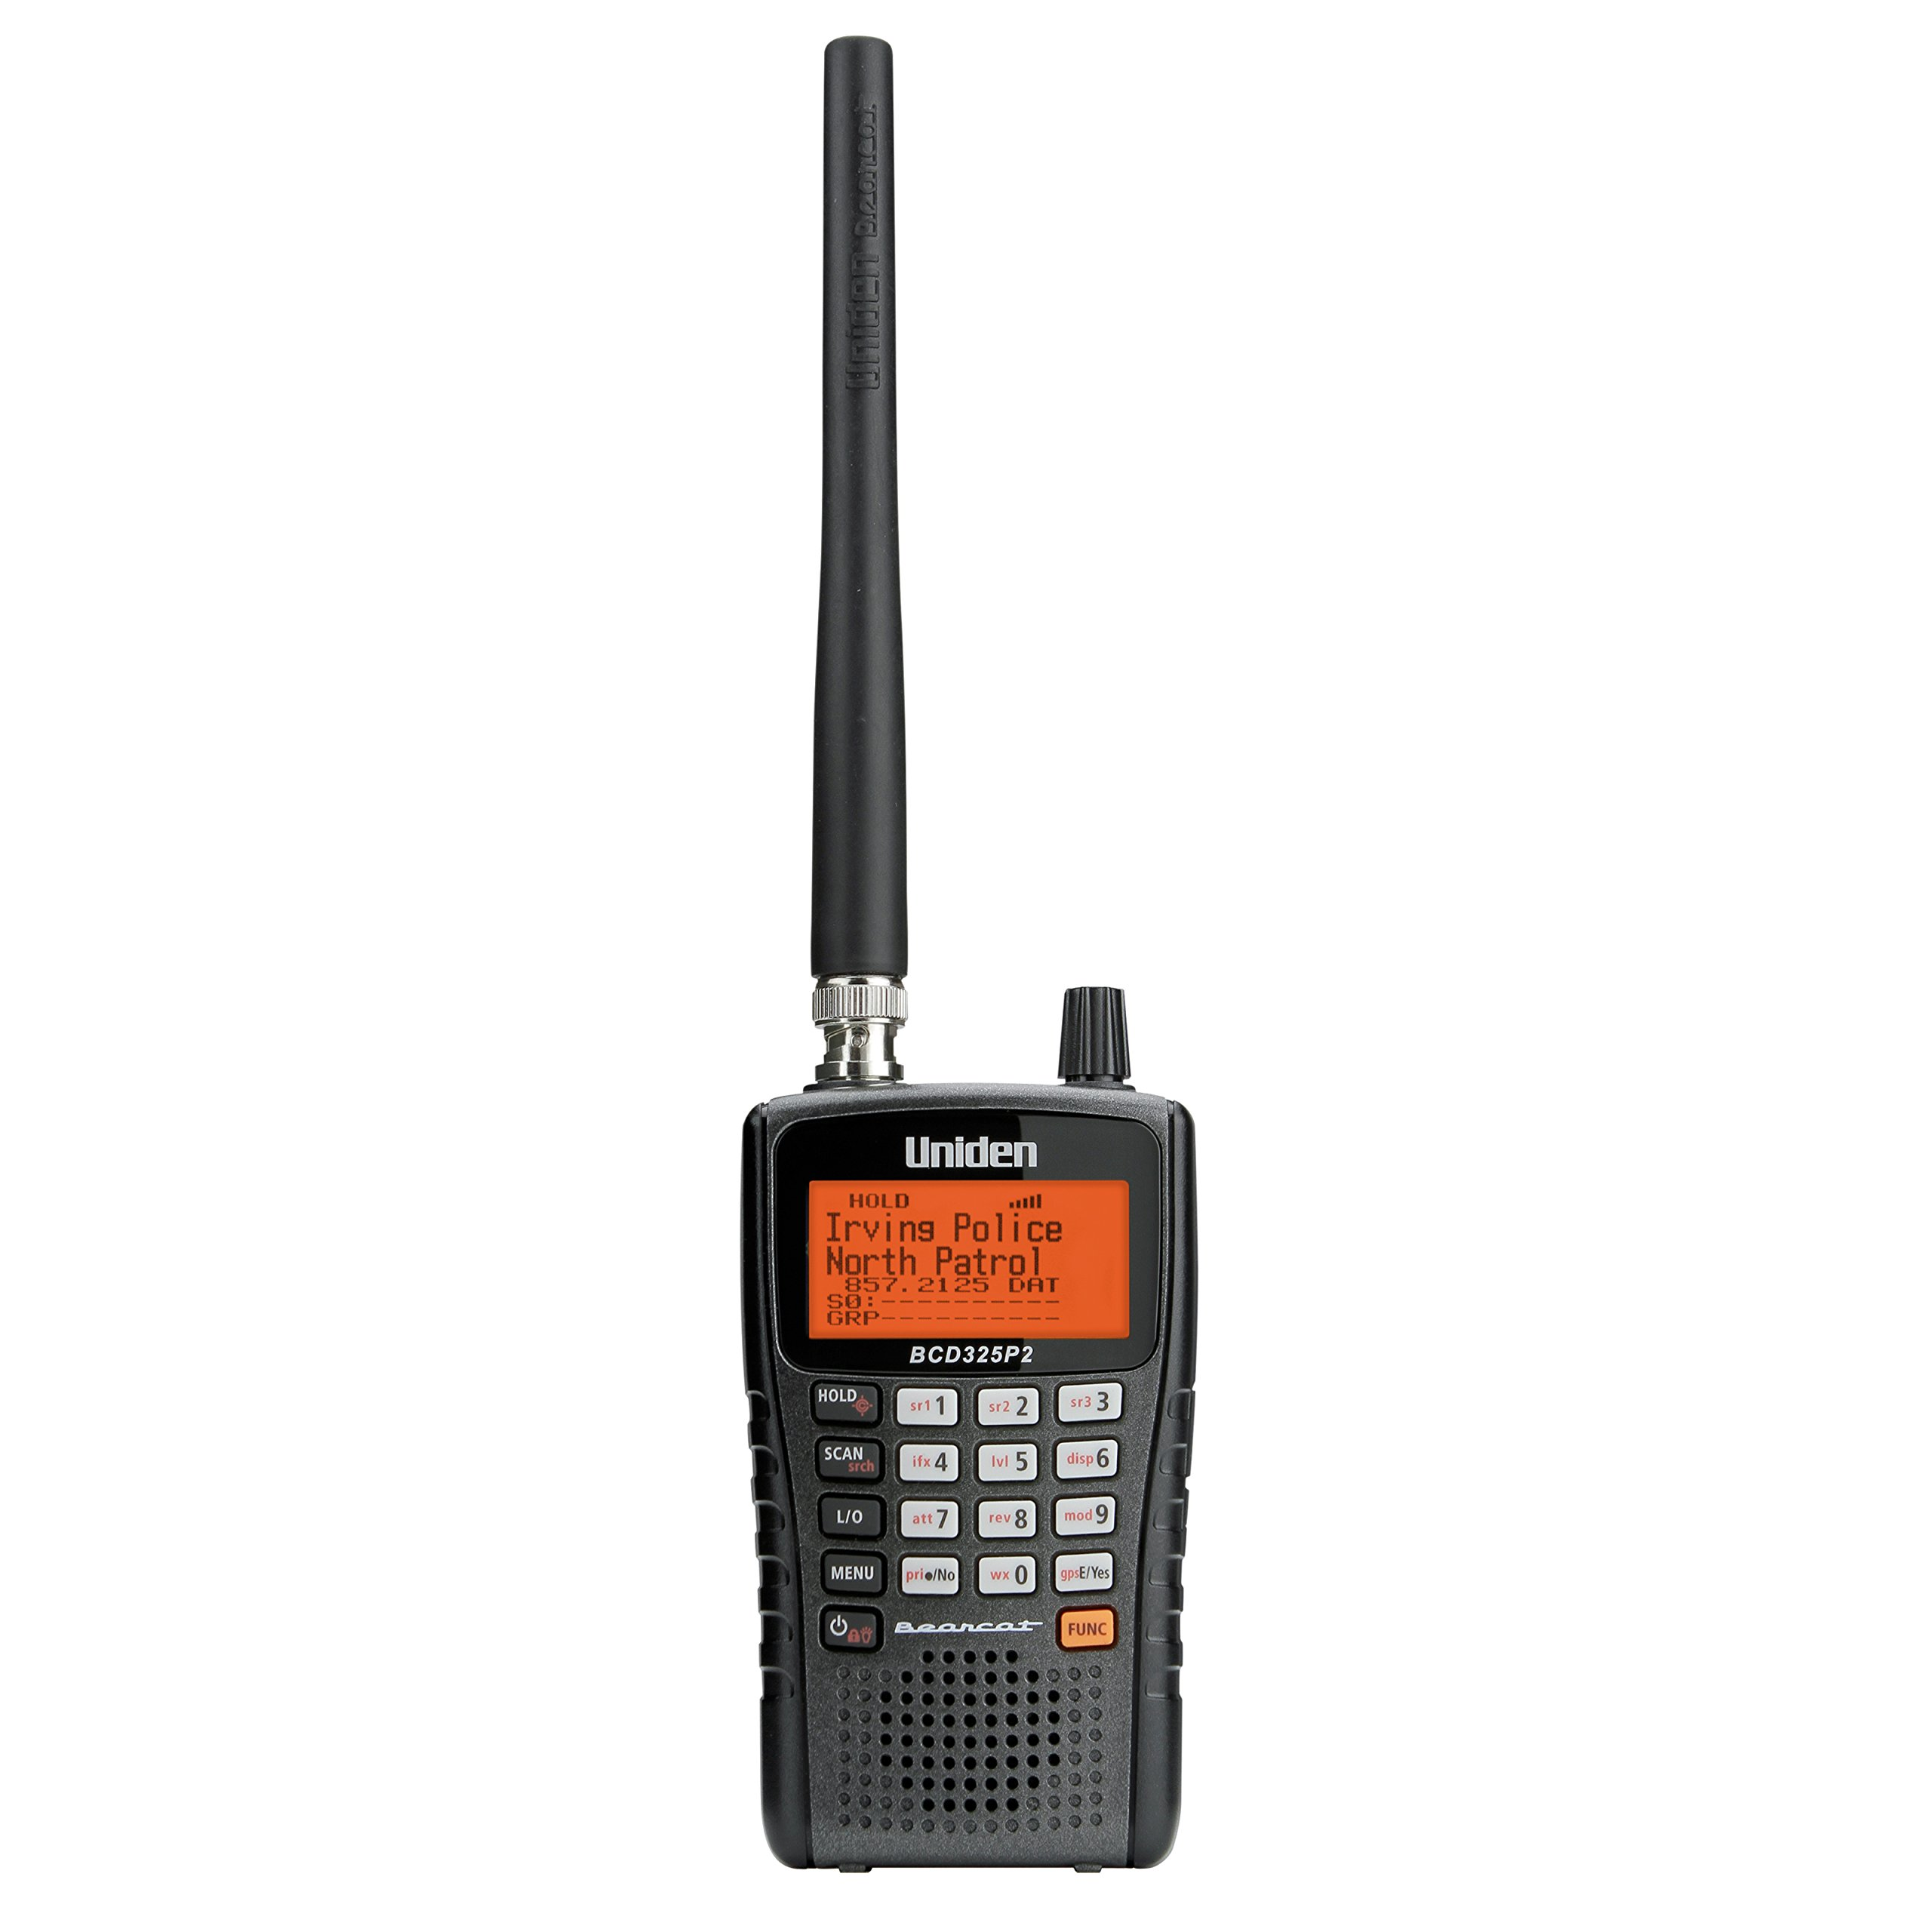 Uniden BCD325P2 Handheld TrunkTracker V Scanner. 25,000 Dynamically Allocated Channels. Close Call RF Capture Technology. Location-Based Scanning and S.A.M.E. Weather Alert. Compact Size. by Uniden